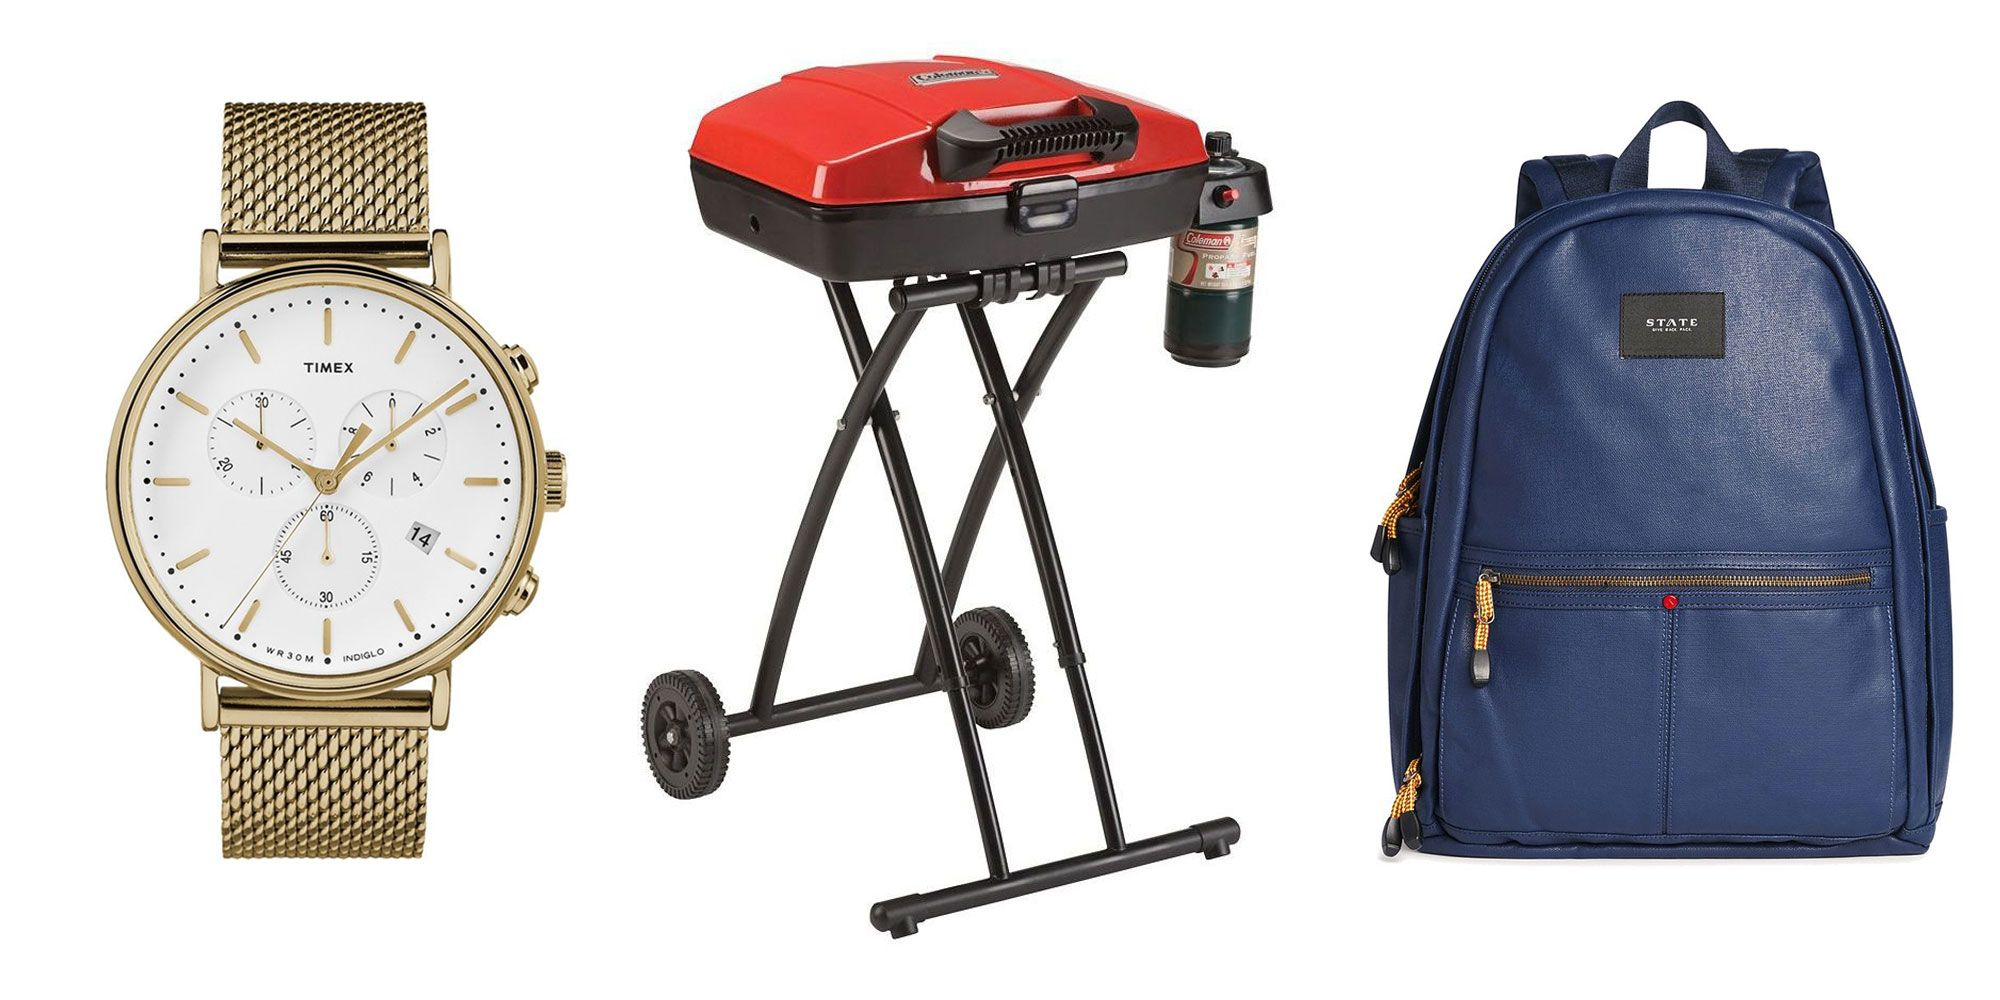 2017 Perfect Gift Ideas - Find the Best Christmas and Holiday ...